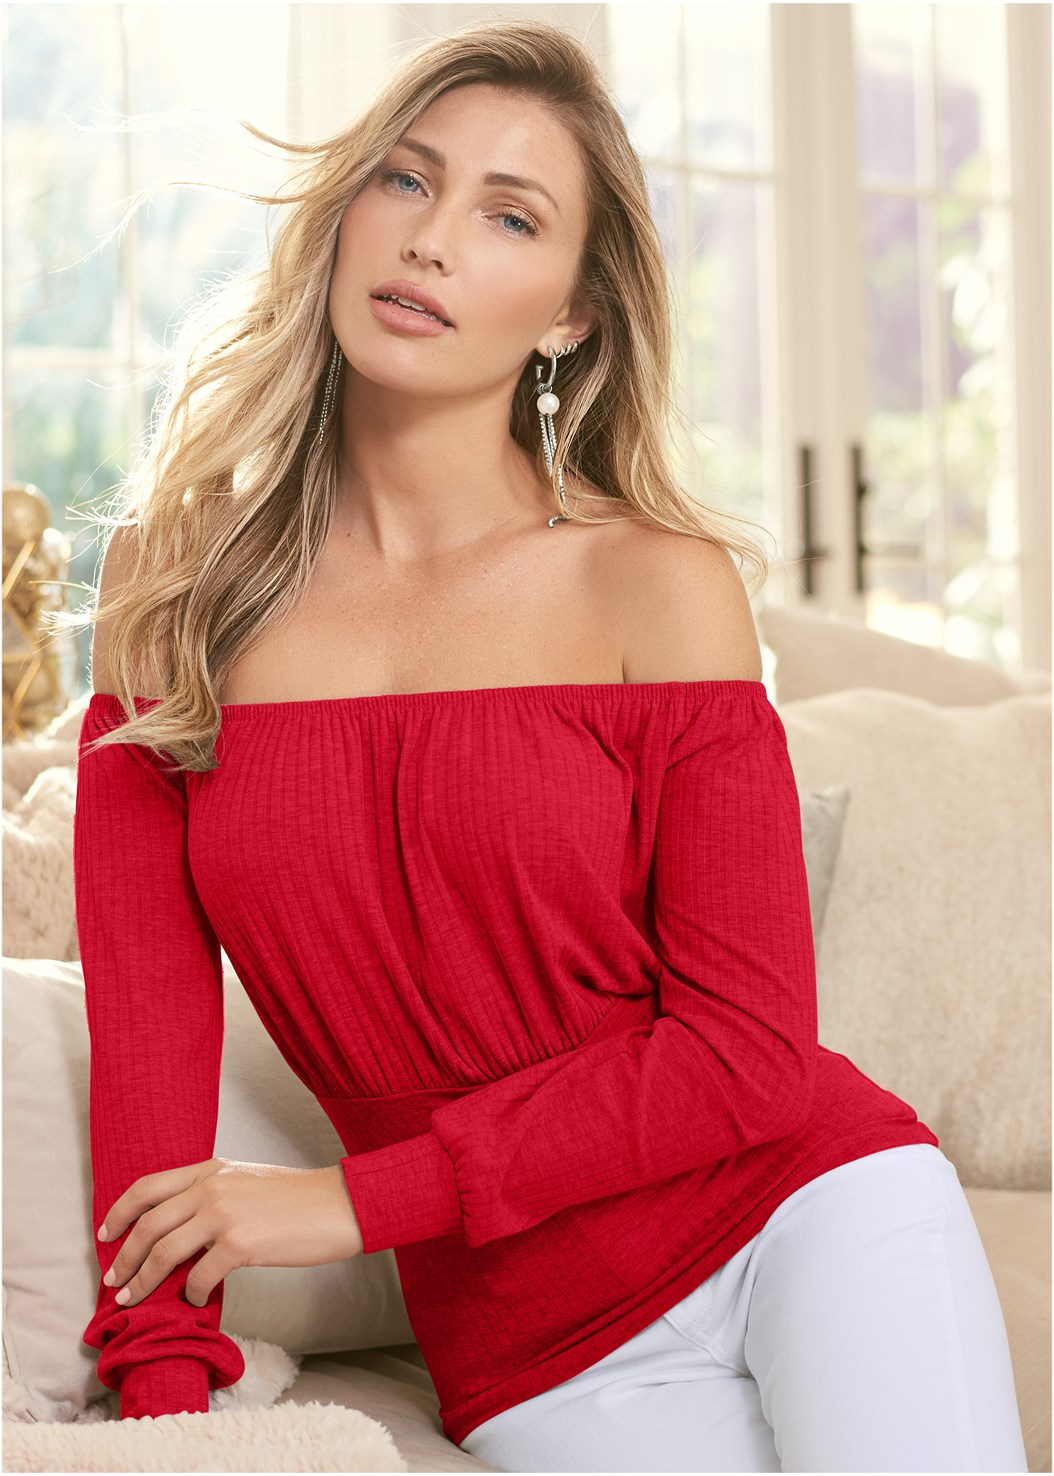 Off The Shoulder Ribbed Top,Mid Rise Color Skinny Jeans,Strapless Bra With Geo Lace,Ankle Strap Heels,Rhinestone Fringe Earrings,Medallion Earrings